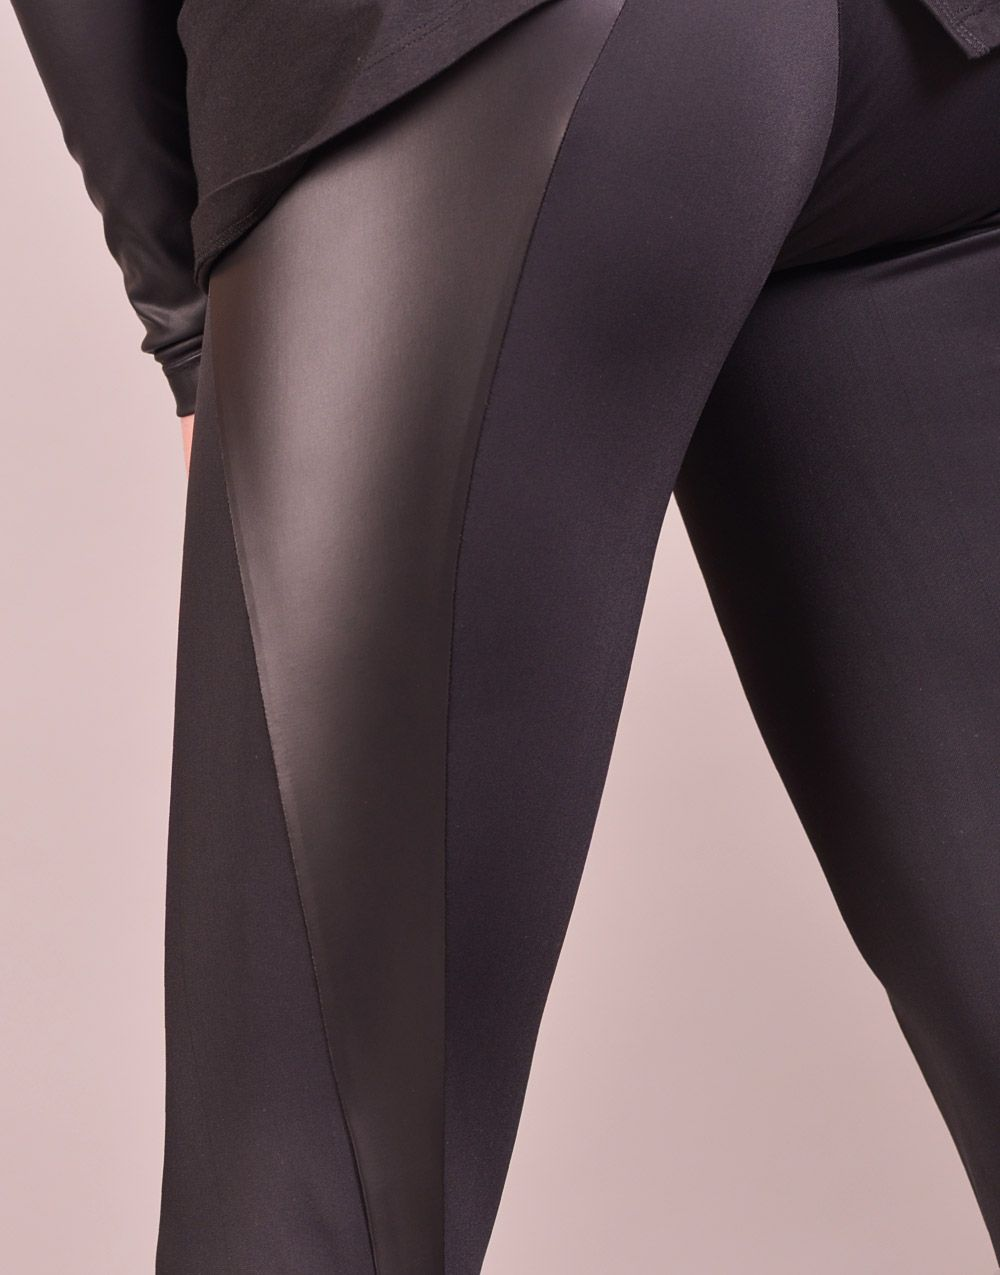 27172b5b13239 Futuristic Clothing, Workout Leggings, Sexy Yoga Pants, Leather Pants,  Women Pants, Black Leggings, Black Tights, Stretch Leggings